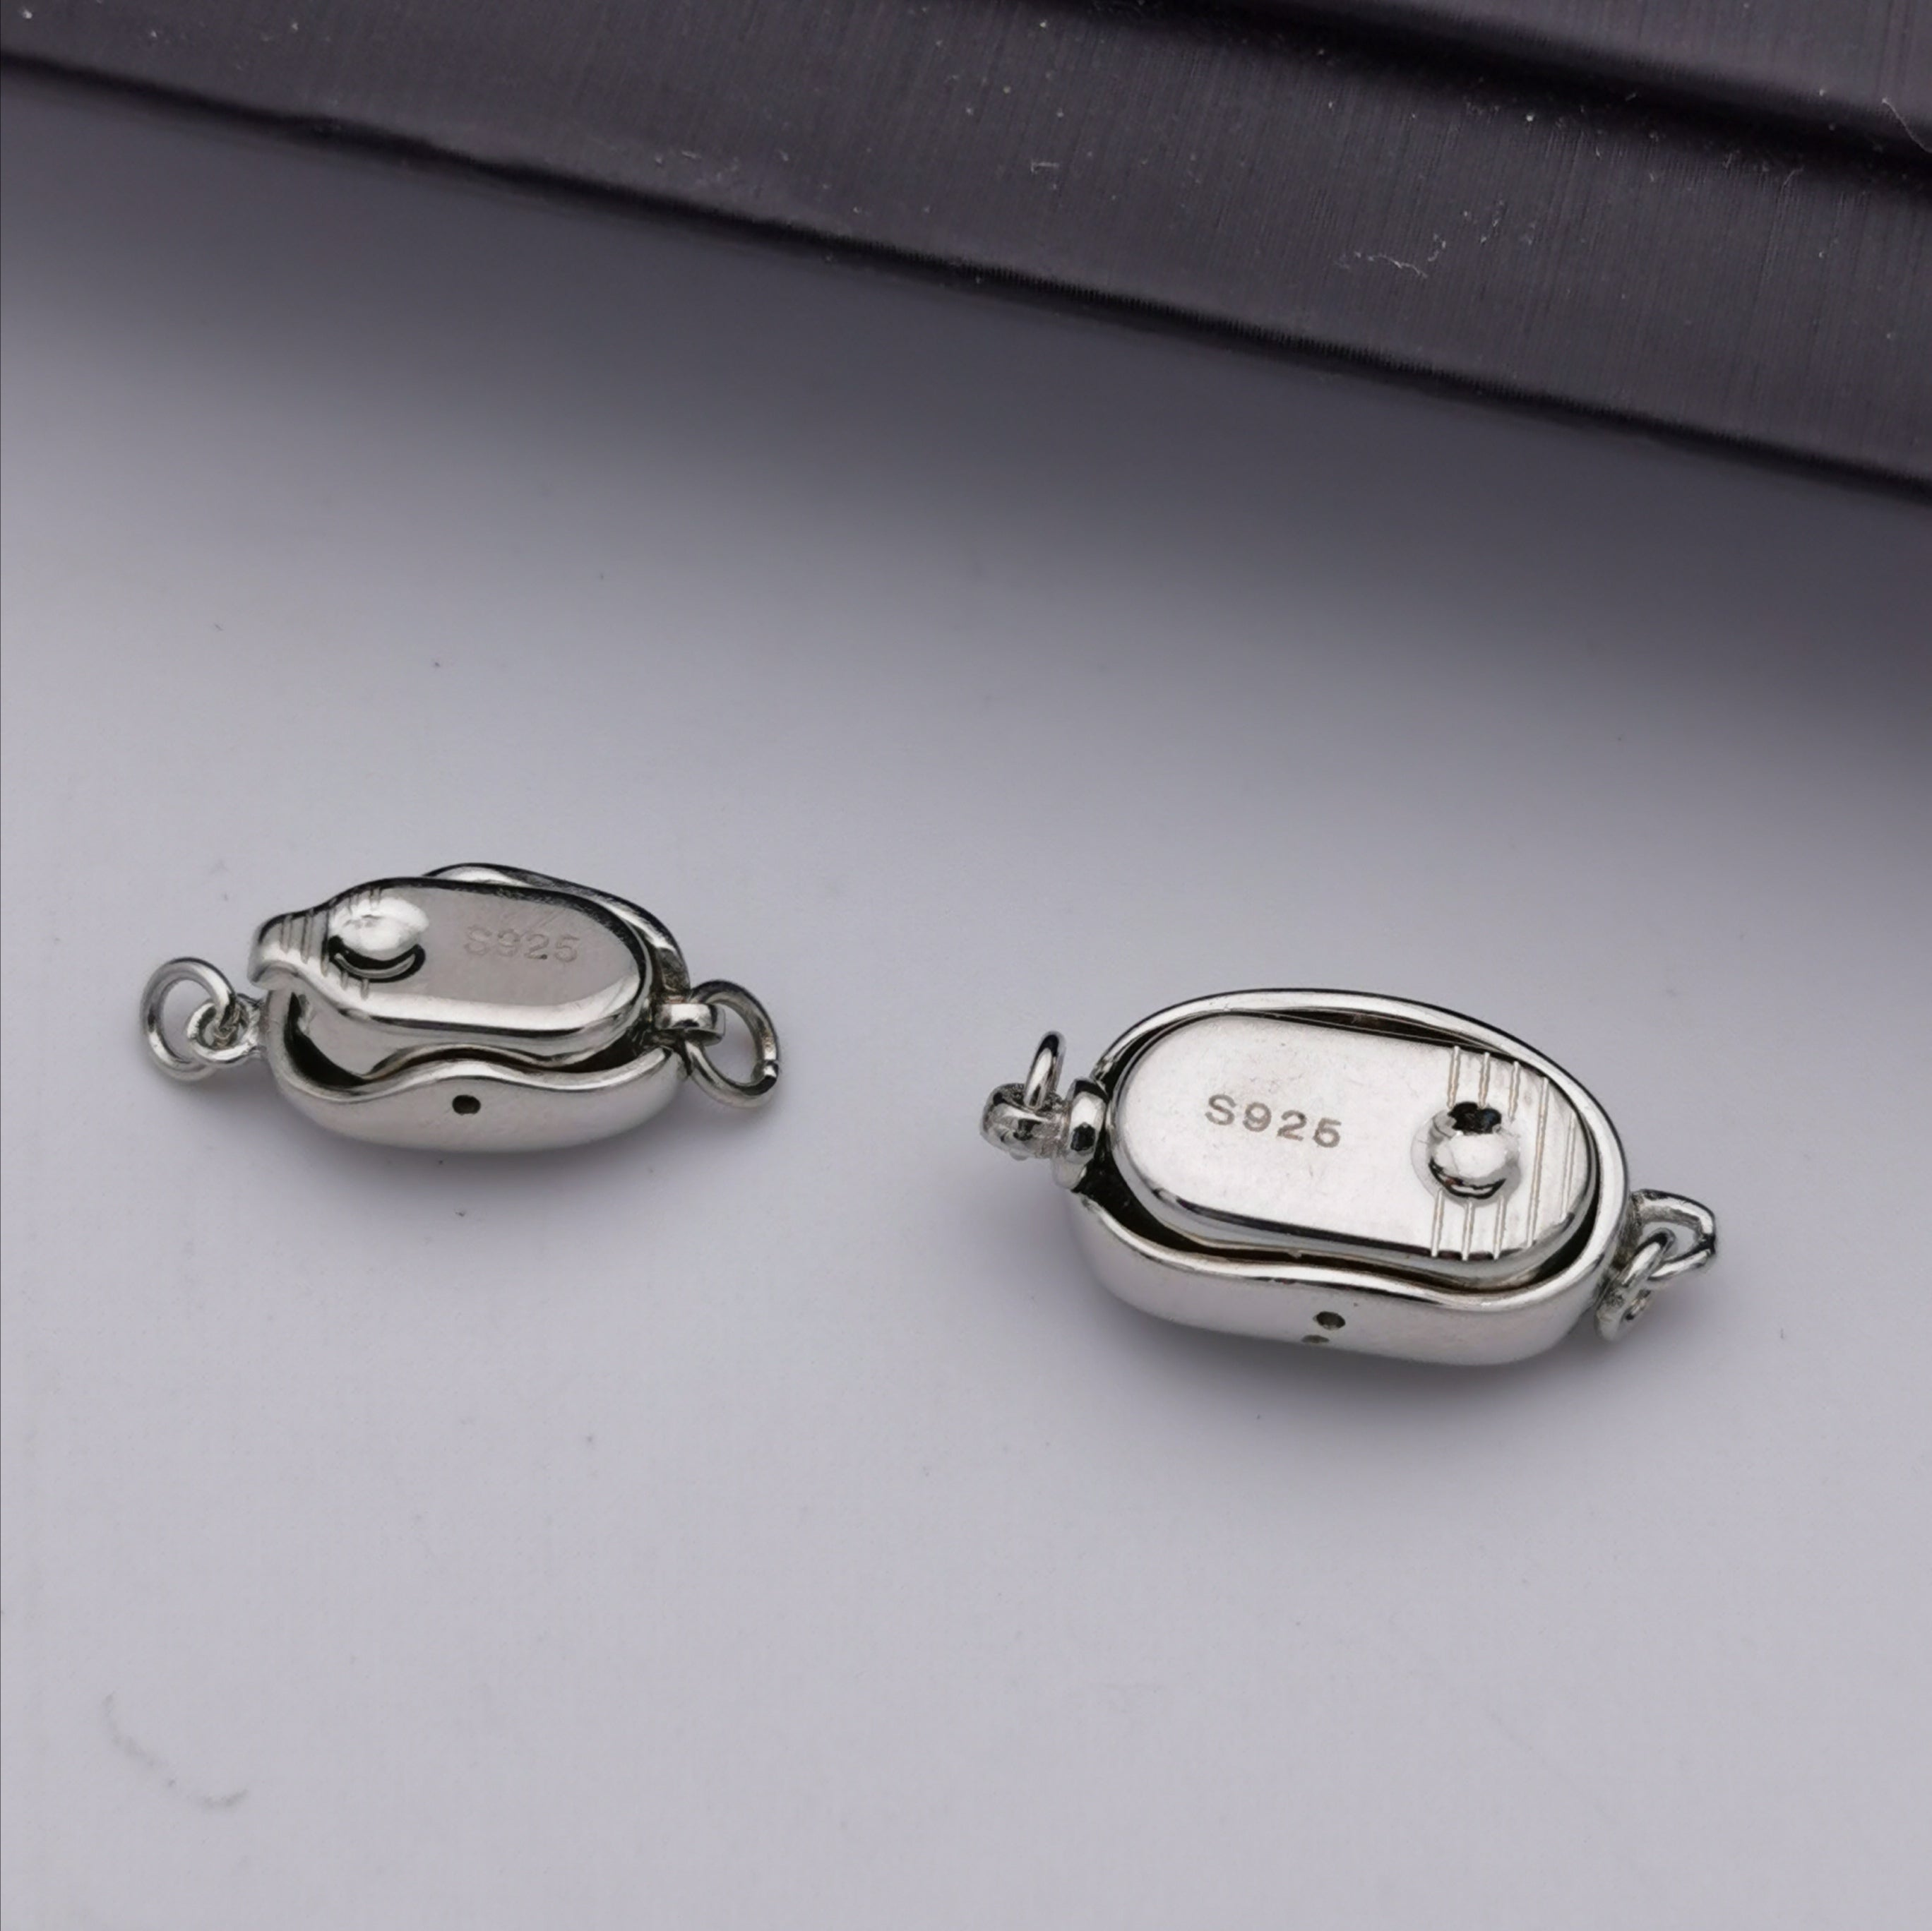 S925 sterling silver clasp